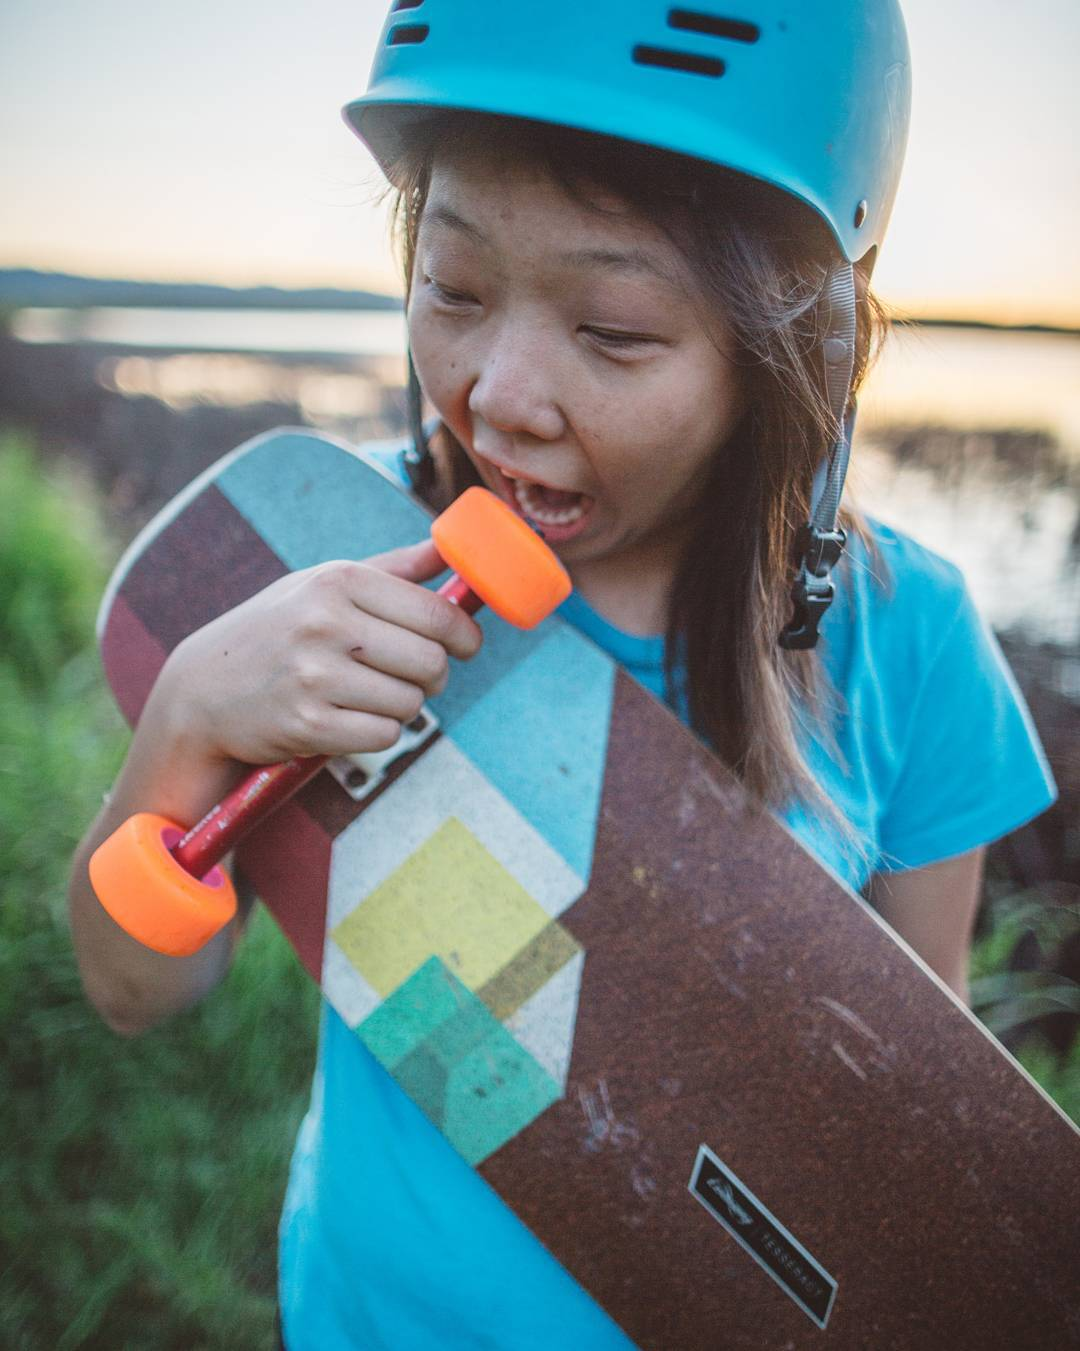 That face you make when your setup looks too good that you gotta eat it.  #LoadedAmbassador @iamcindyzhou with the munchies.  Photo: @skatography  #LoadedBoards #Tesseract #Orangatang #Orange #TheSkiff